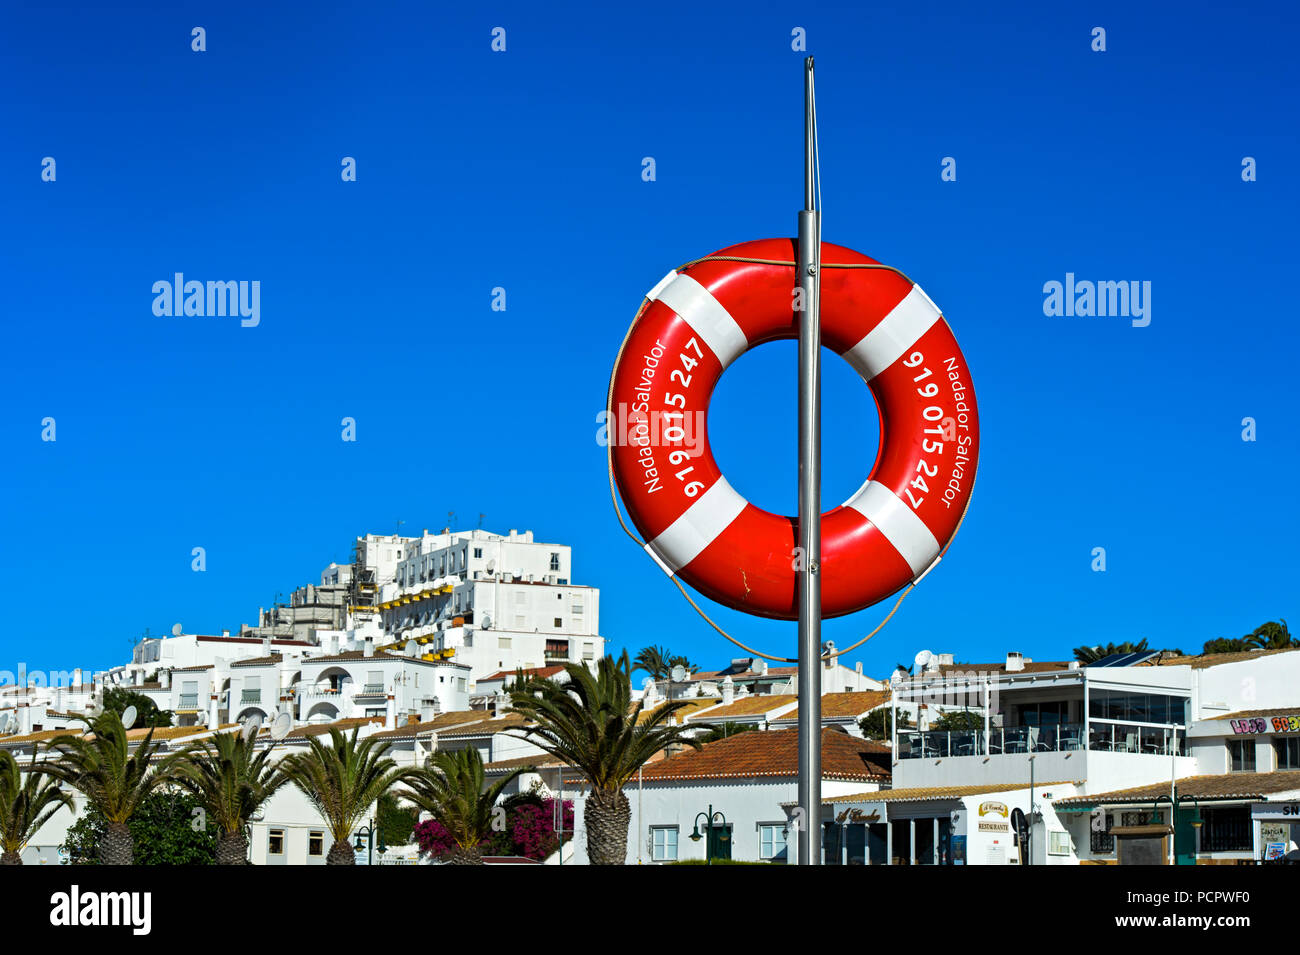 Rescue buoy at the beach, Praia da Luz, Luz, Algarve, Portugal - Stock Image